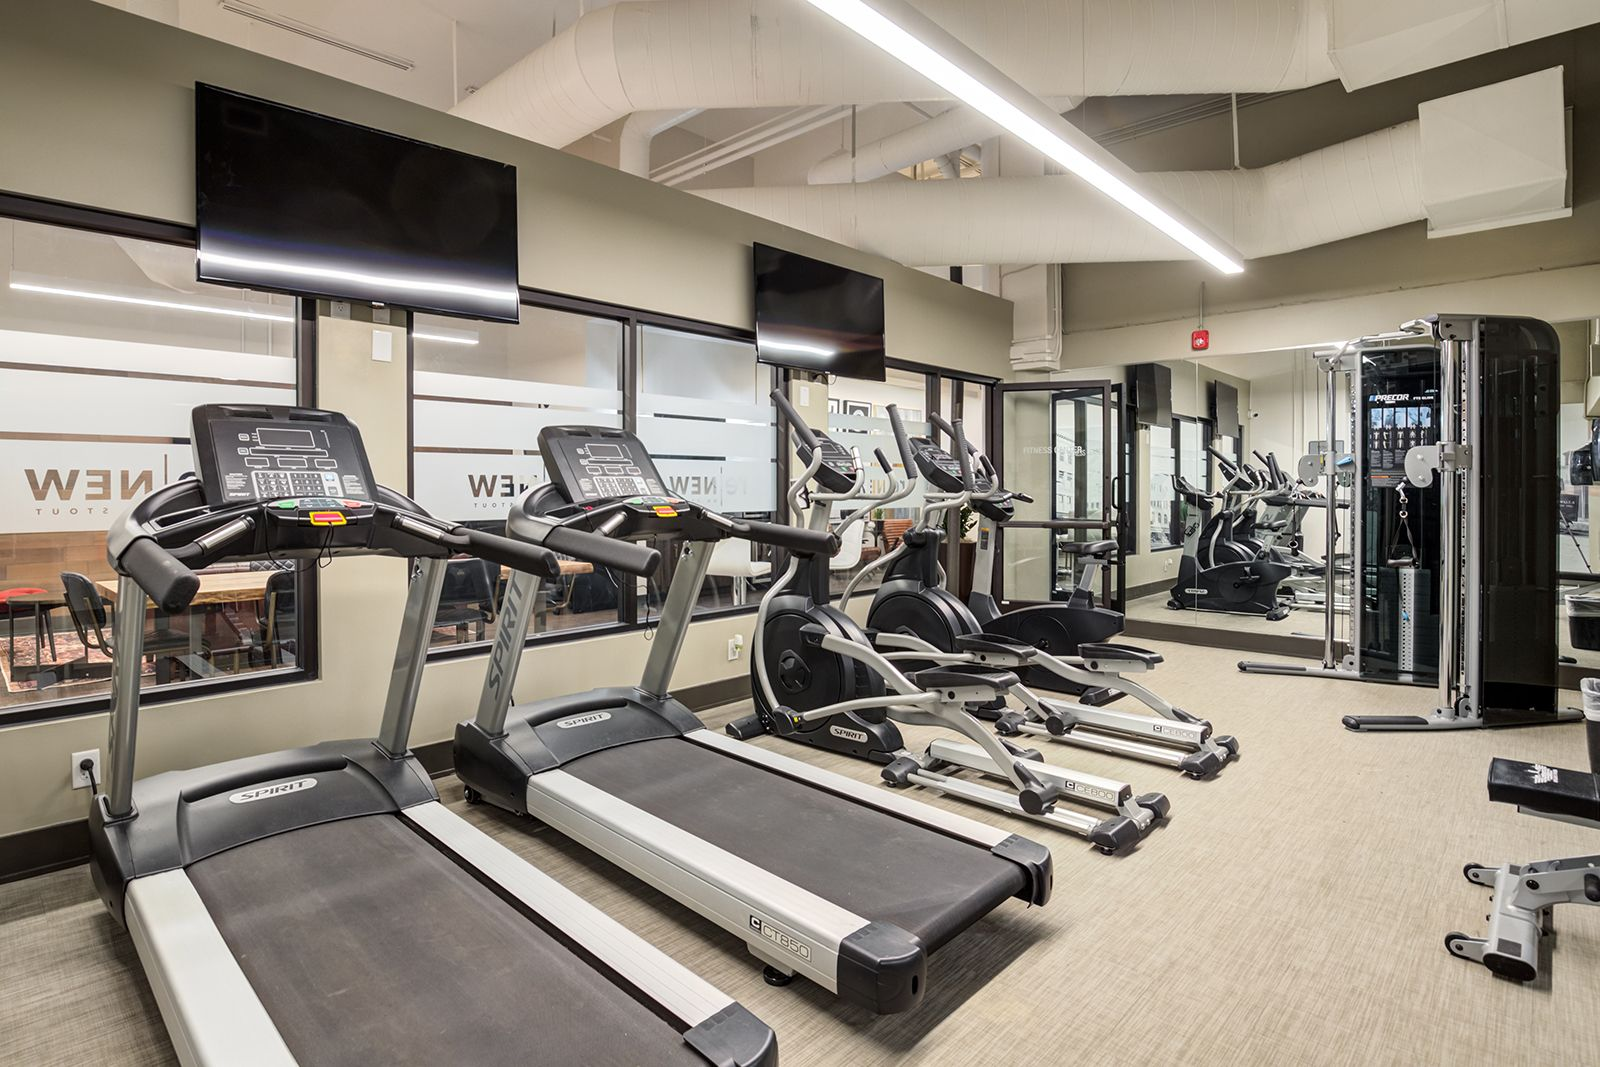 Community amenities include an onsite 24hour accessible